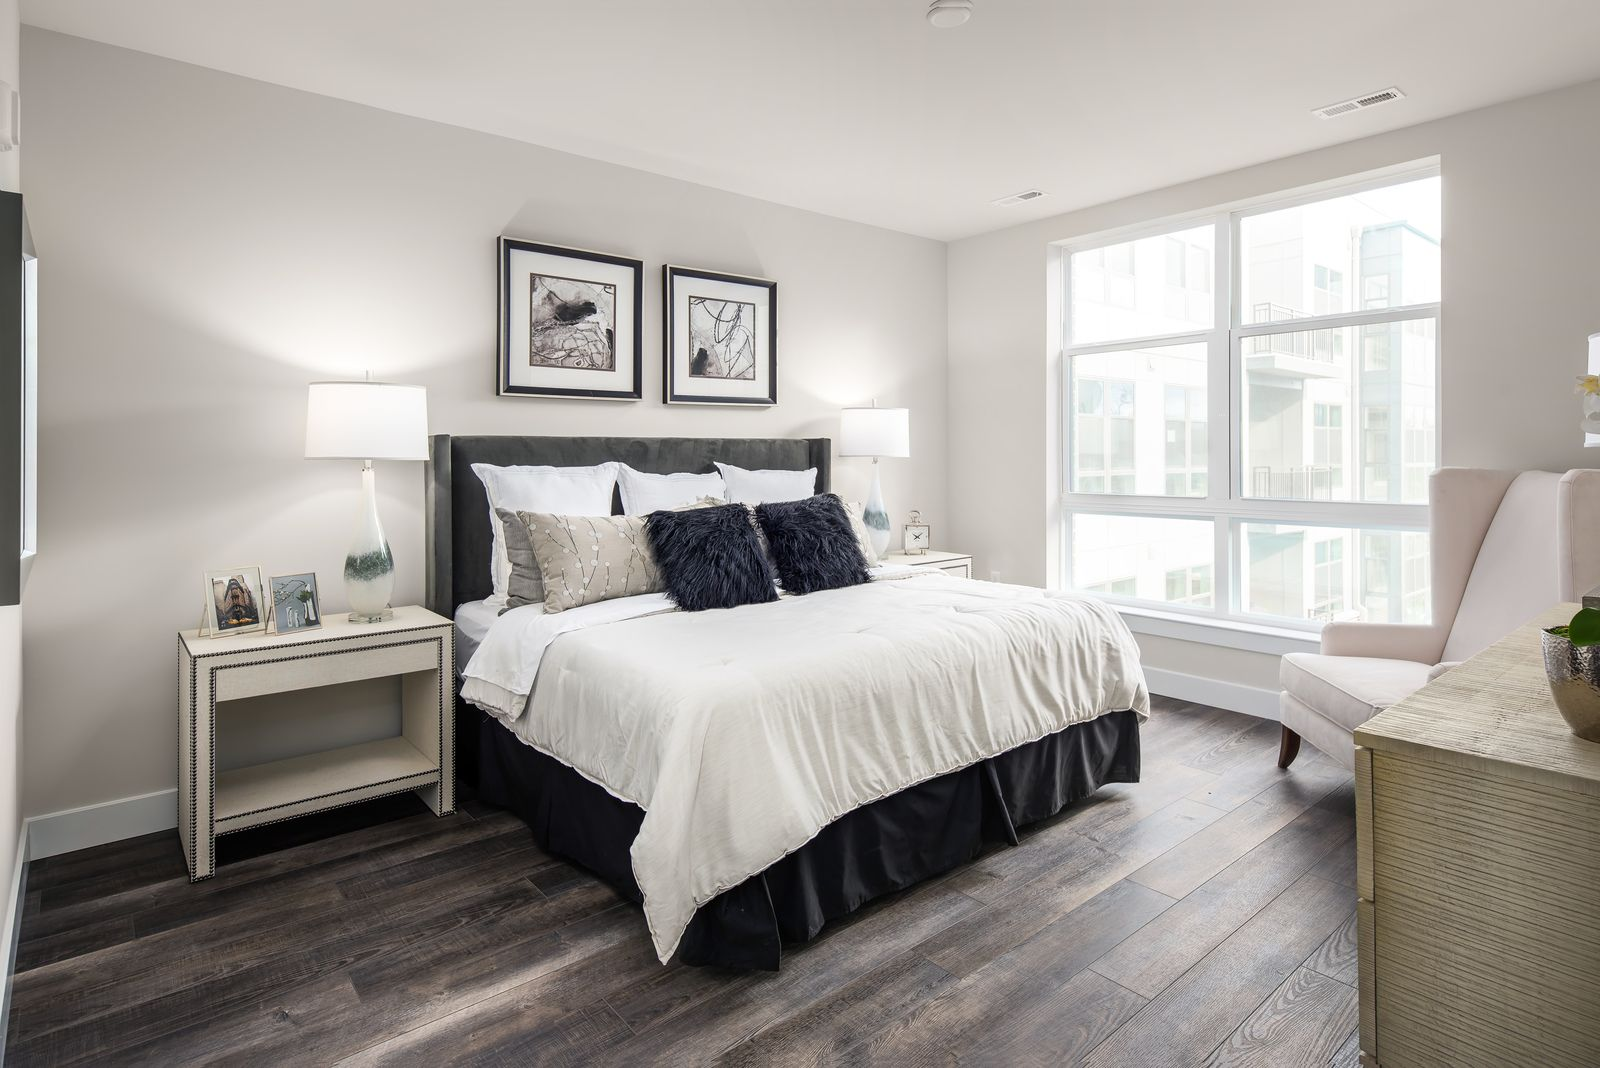 Bedroom featured in the 2 Bedroom 2.5 Bath By NVHomes in Washington, VA